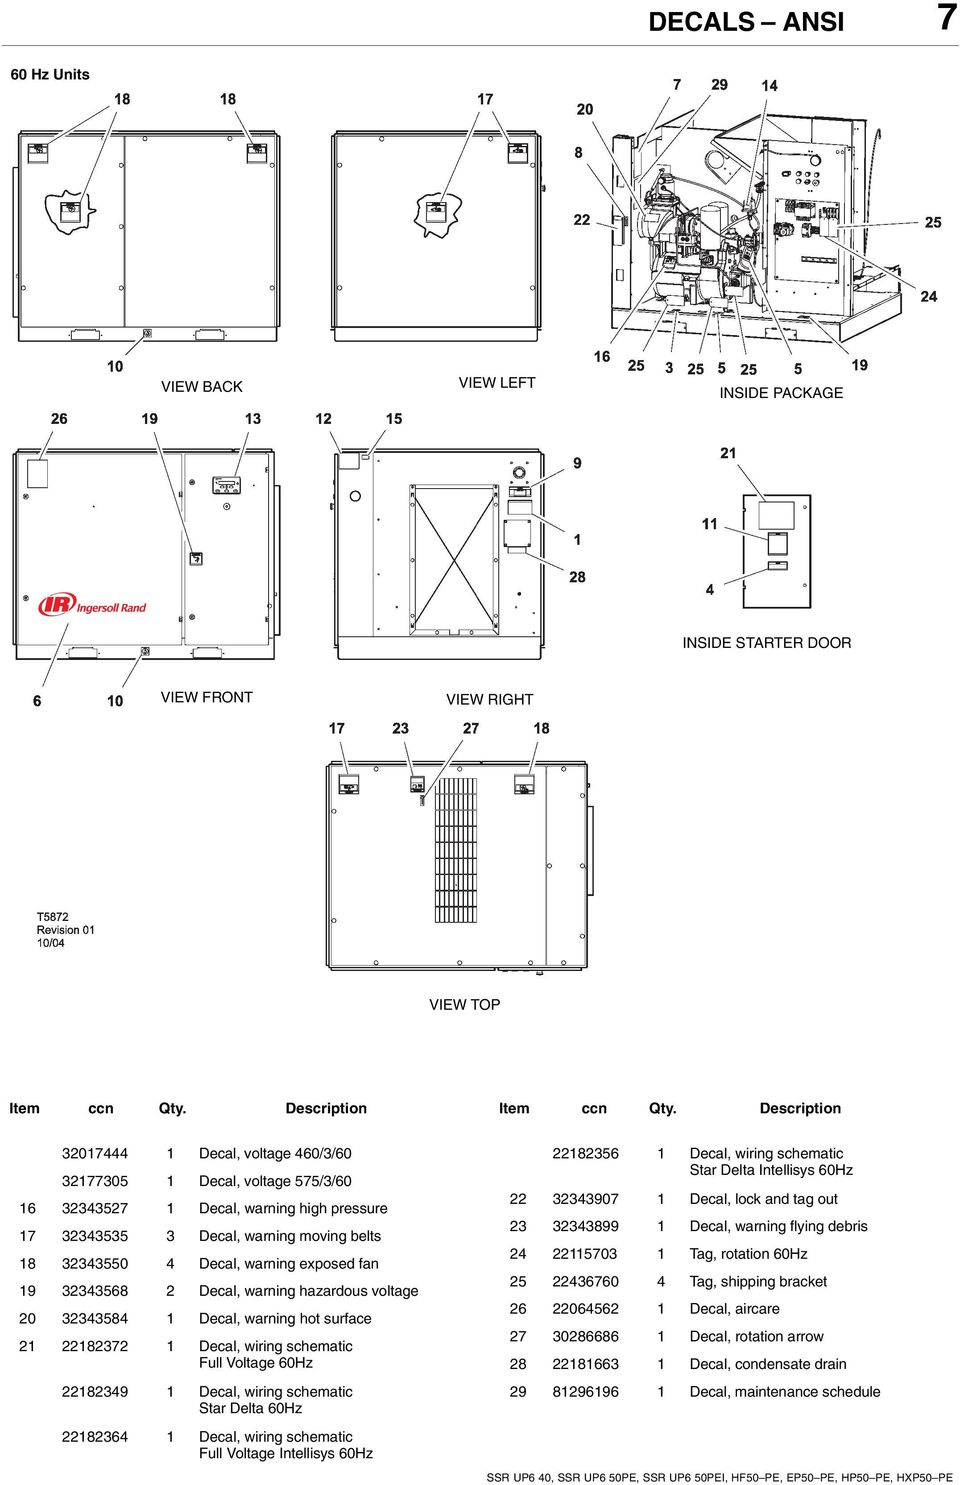 50 Kw Ingersoll Rand Wiring Schematic Electrical Diagrams T30 Diagram Ssr Up6 40 50pe 50pei Hf50 Pe Ep50 Hp50 Parts